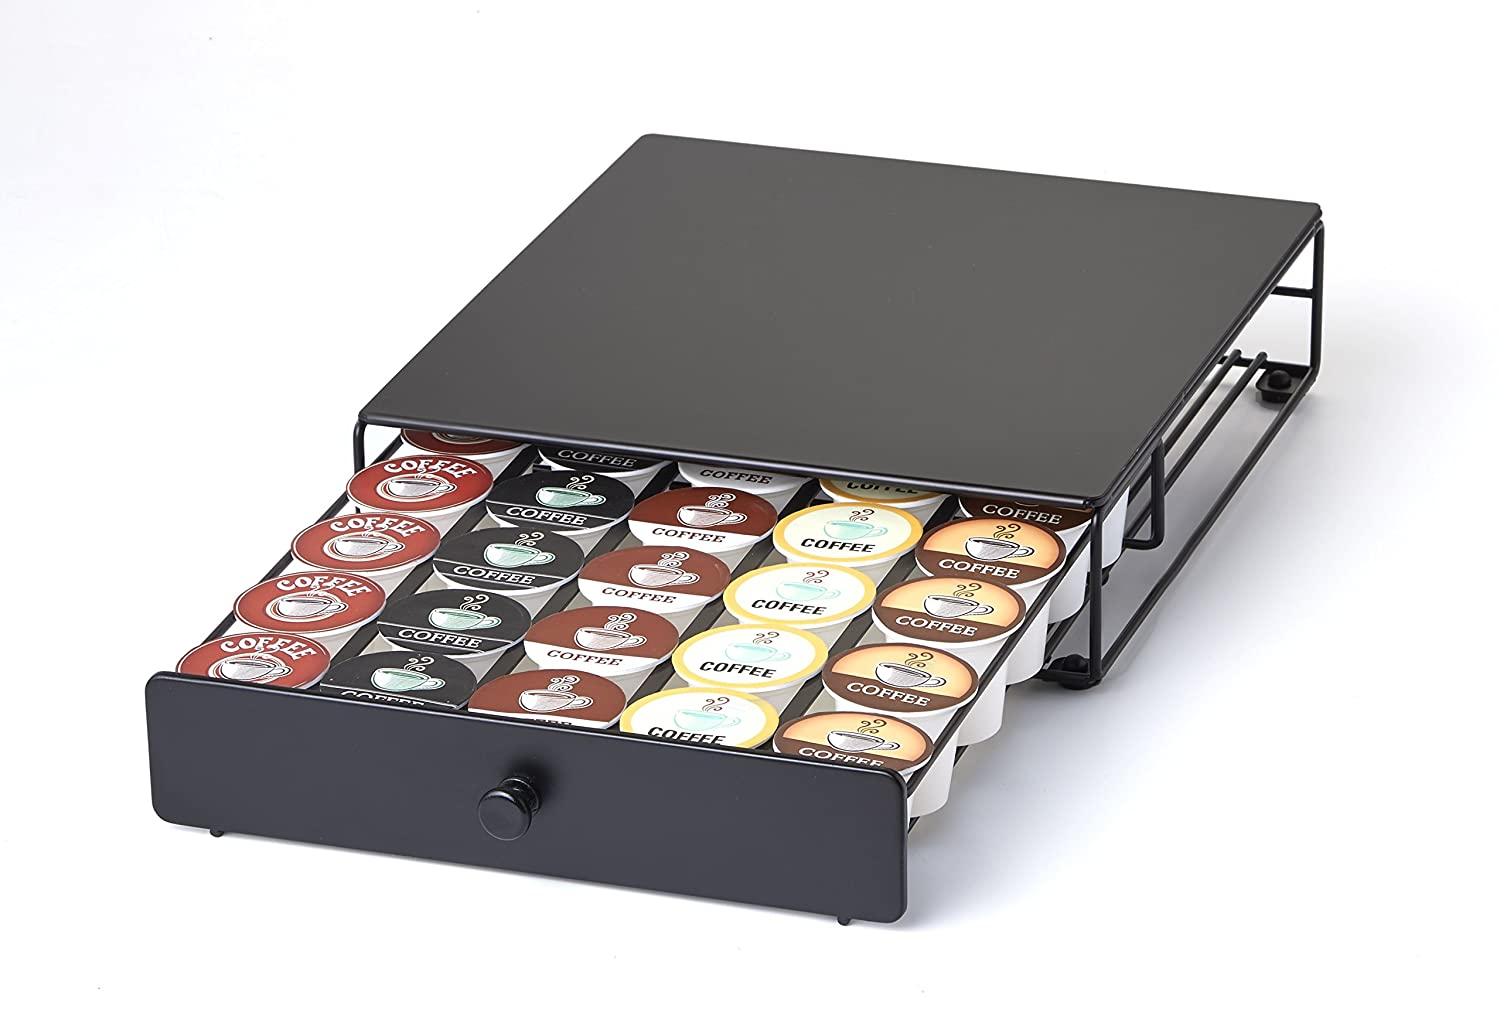 36 k cup holder rack storage stand keurig coffee pod chrome drawer organizer mat ebay. Black Bedroom Furniture Sets. Home Design Ideas